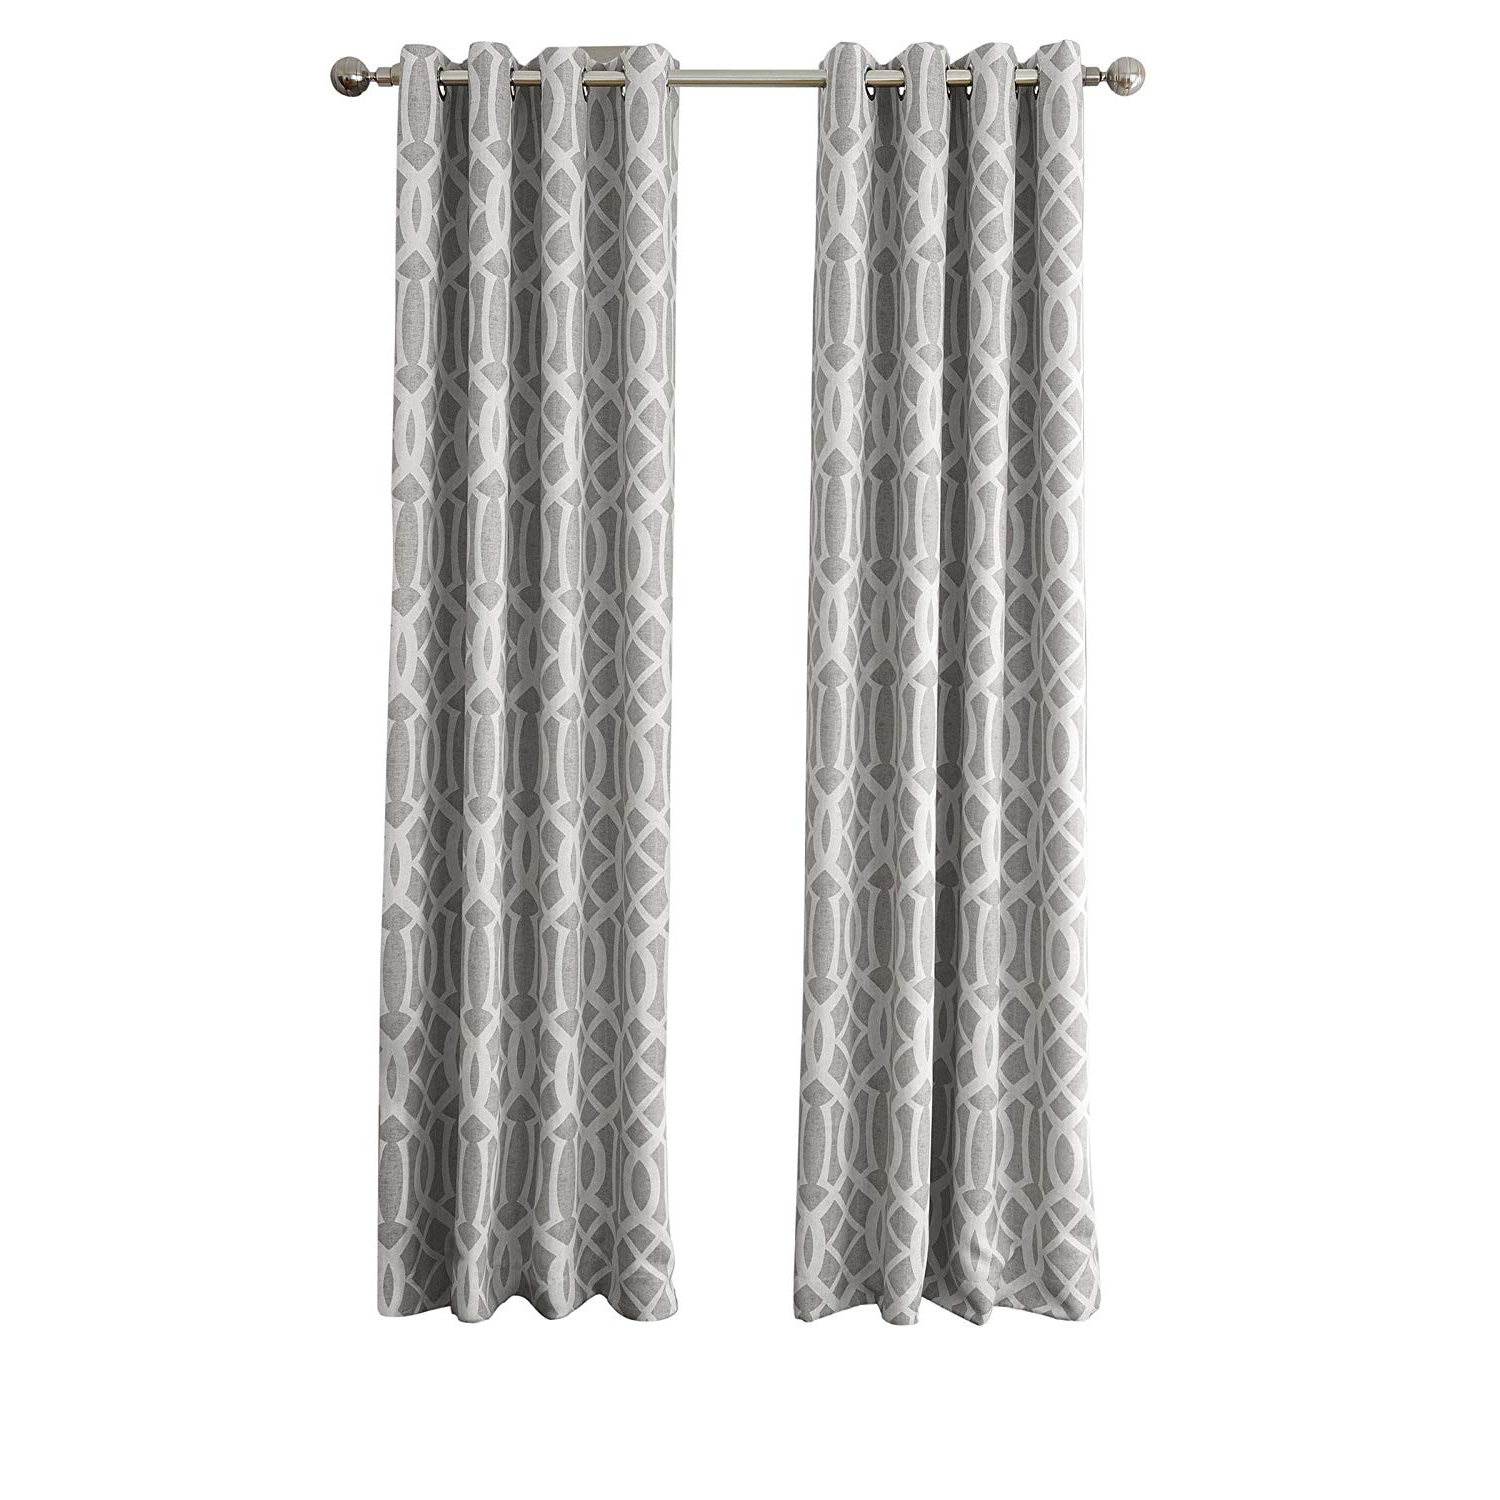 "Most Up To Date Kaiden Geometric Room Darkening Window Curtains Pertaining To Elrene Home Fashions Energy Efficient Room Darkening Rod Pocket Window Panel Harper Gray 52"" X 84"" (1 Panel) 1 (Gallery 15 of 20)"